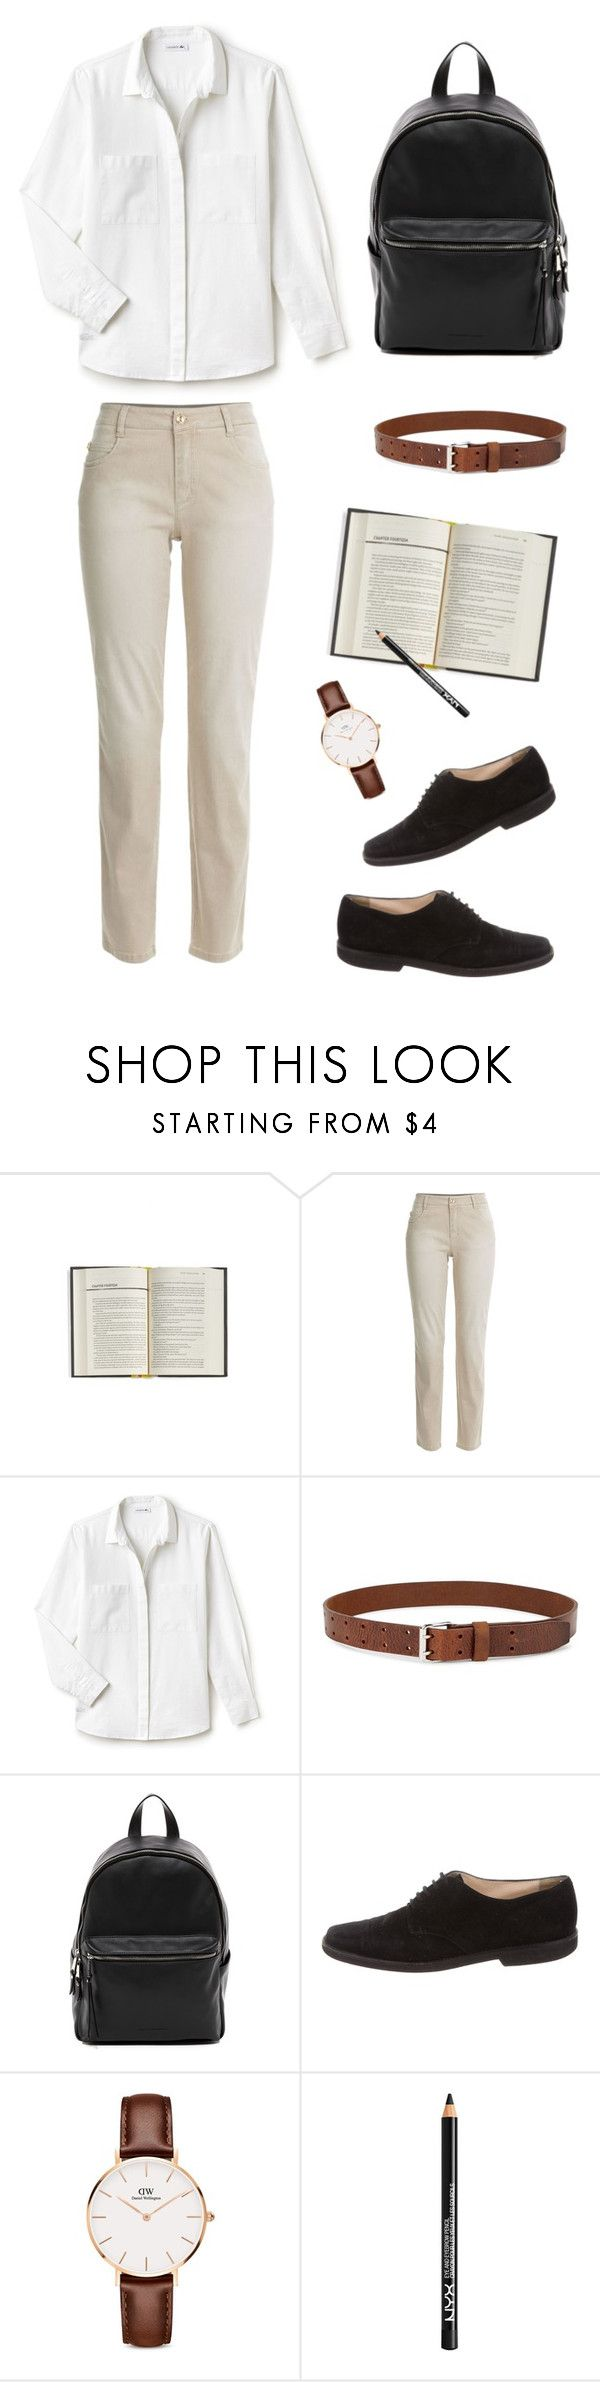 """""""1st day in school"""" by rad-lifestyle ❤ liked on Polyvore featuring E. Lawrence, Ltd., Ermanno Scervino, Lacoste, Étoile Isabel Marant, French Connection, Manolo Blahnik, Daniel Wellington and NYX"""